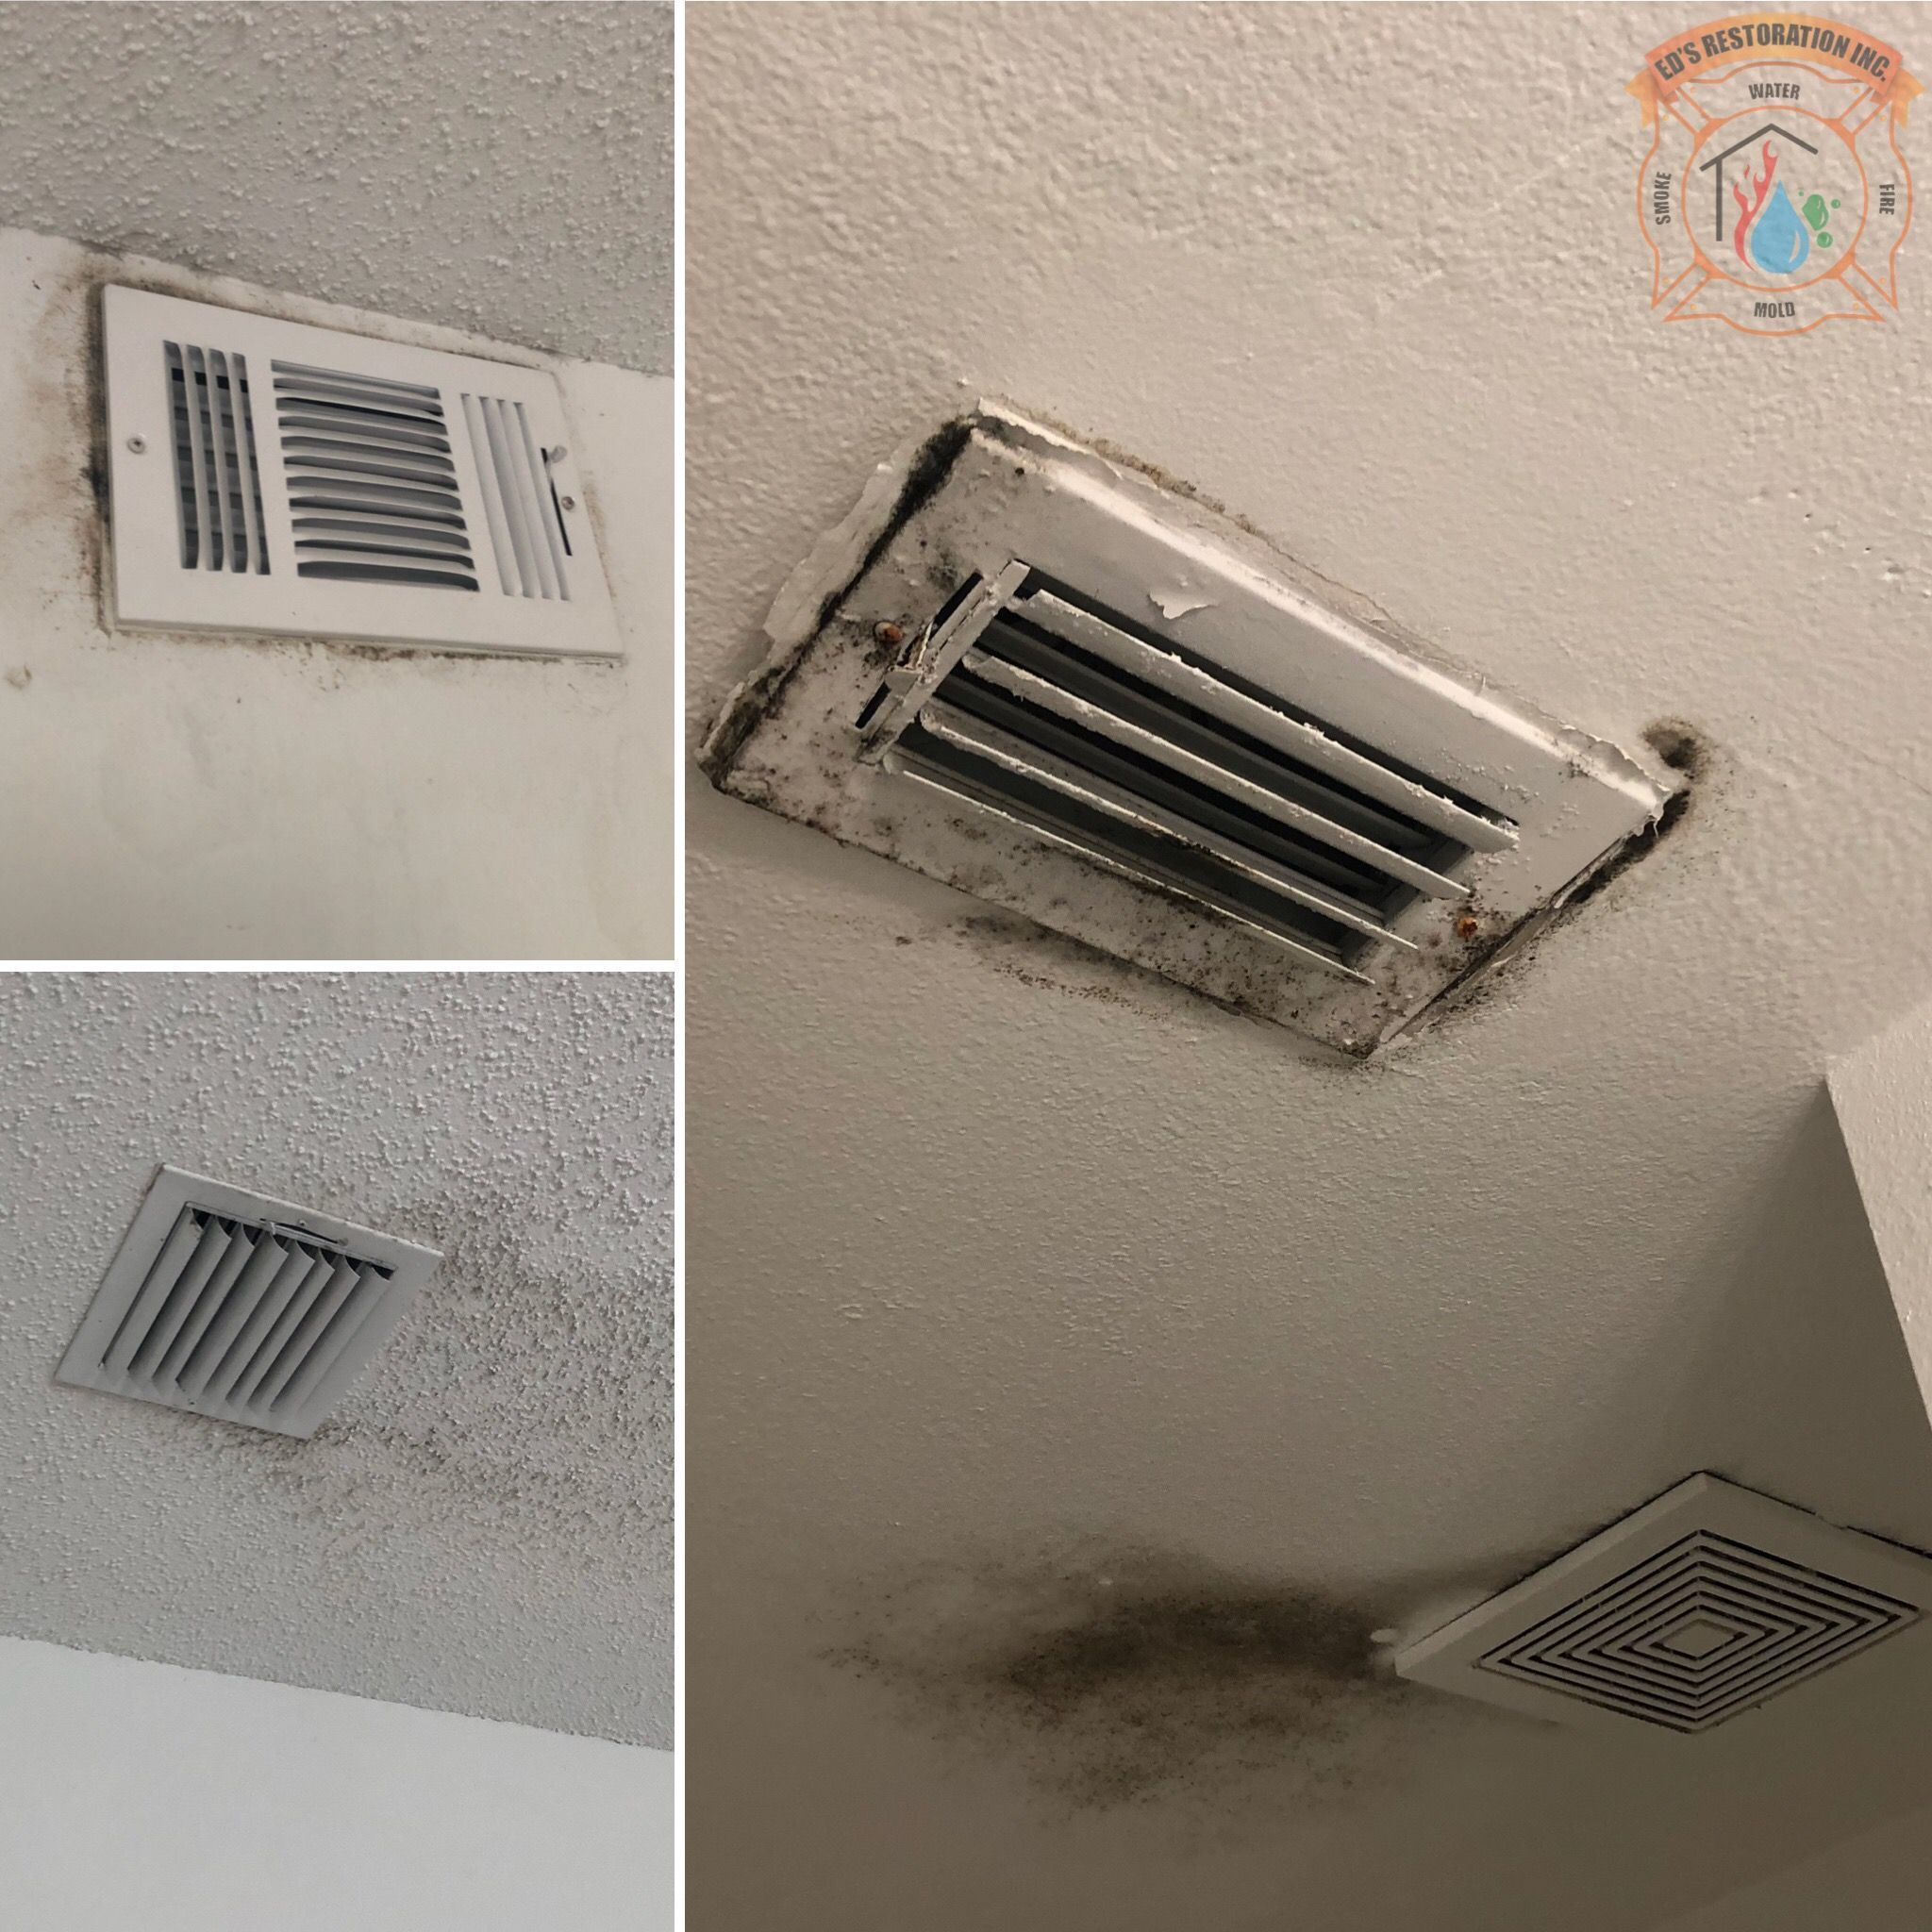 One reason for mold growth around A/C vents is because of